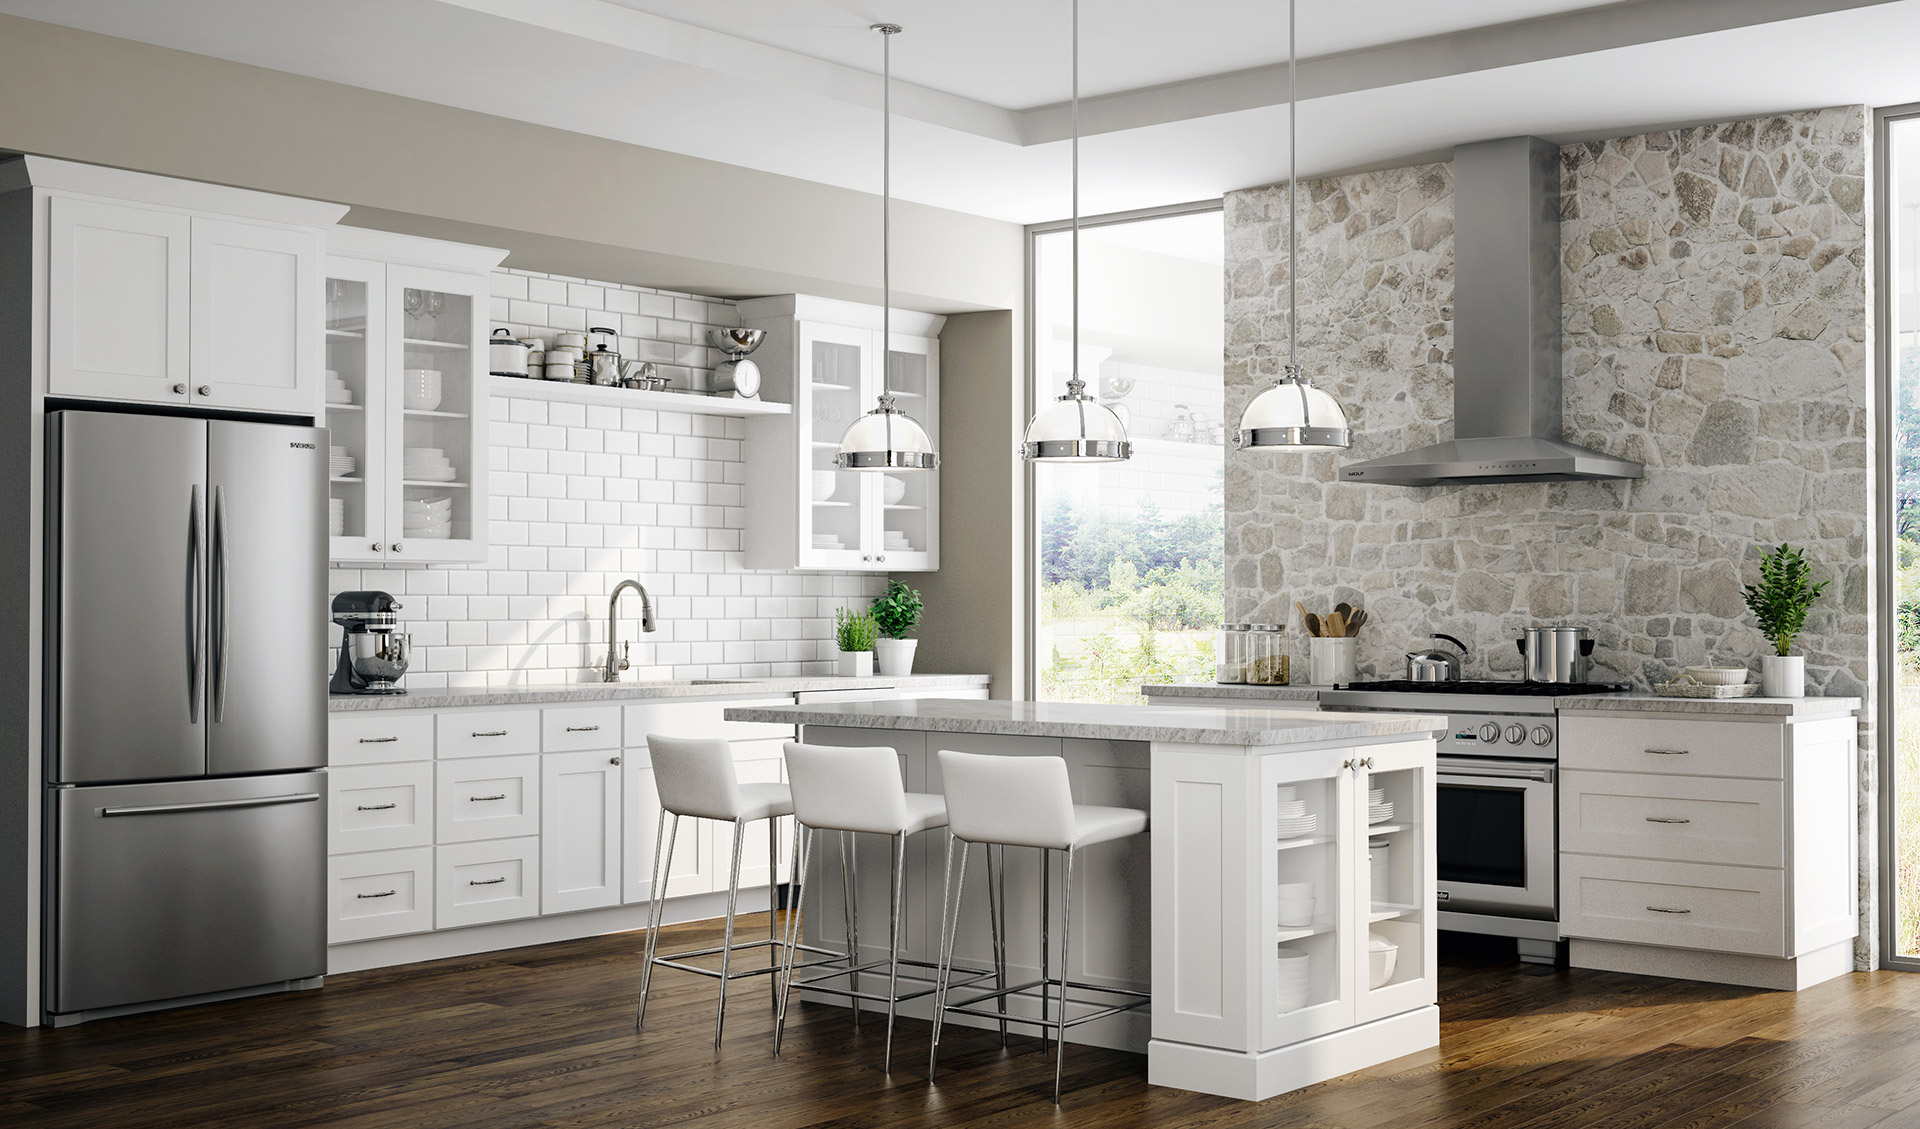 M&R Kitchen and Baths - Designing beautiful kitchen and baths.